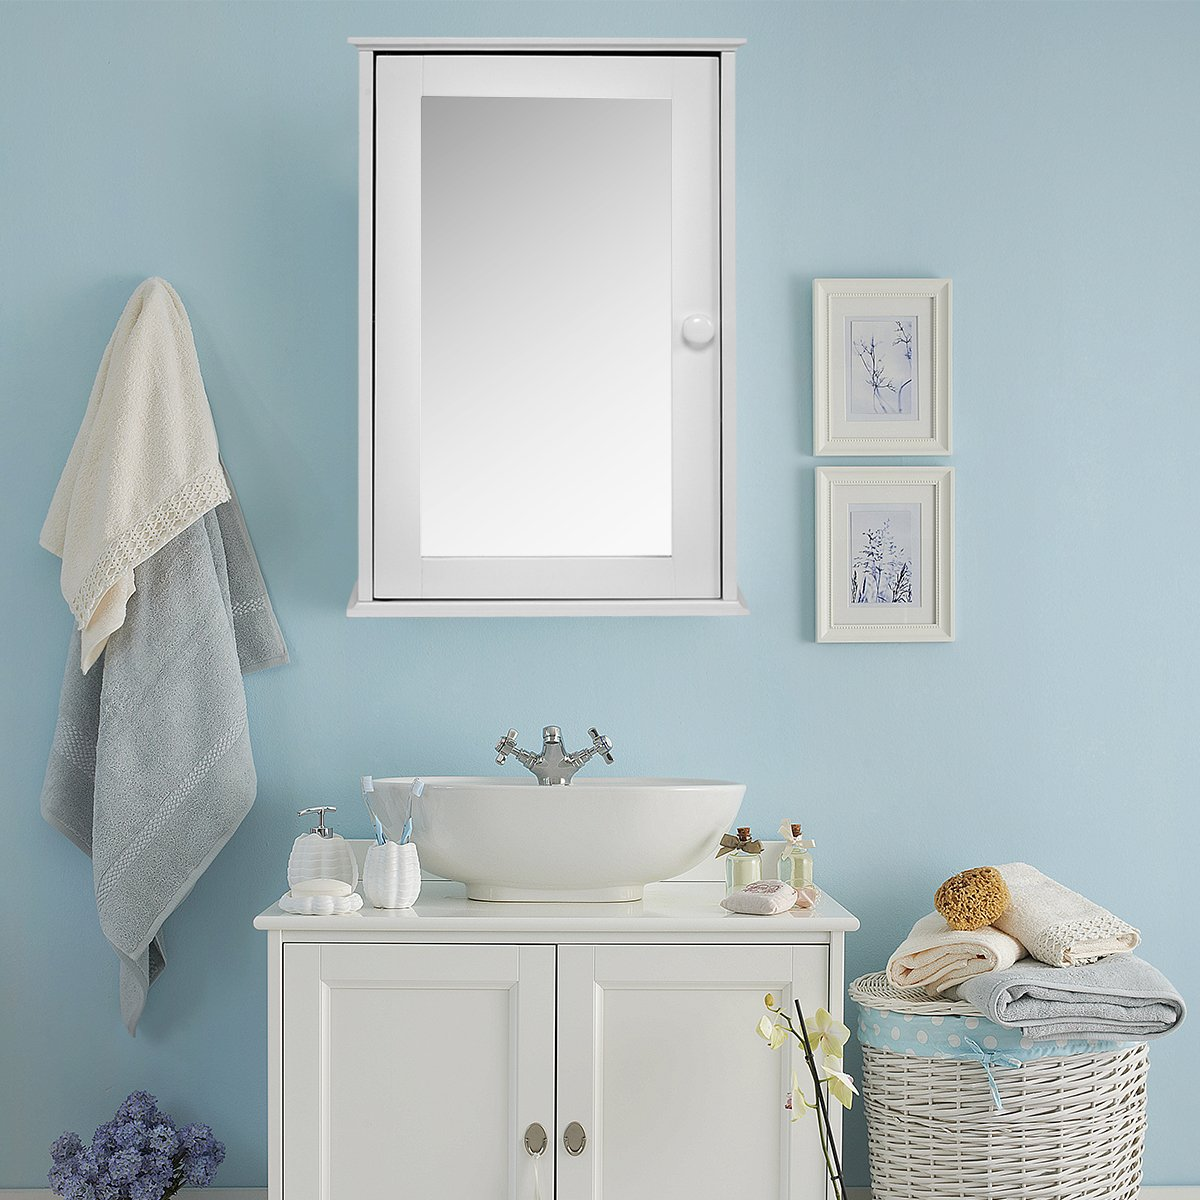 Amazon.com: TANGKULA Mirrored Bathroom Cabinet Wall Mount Storage ...